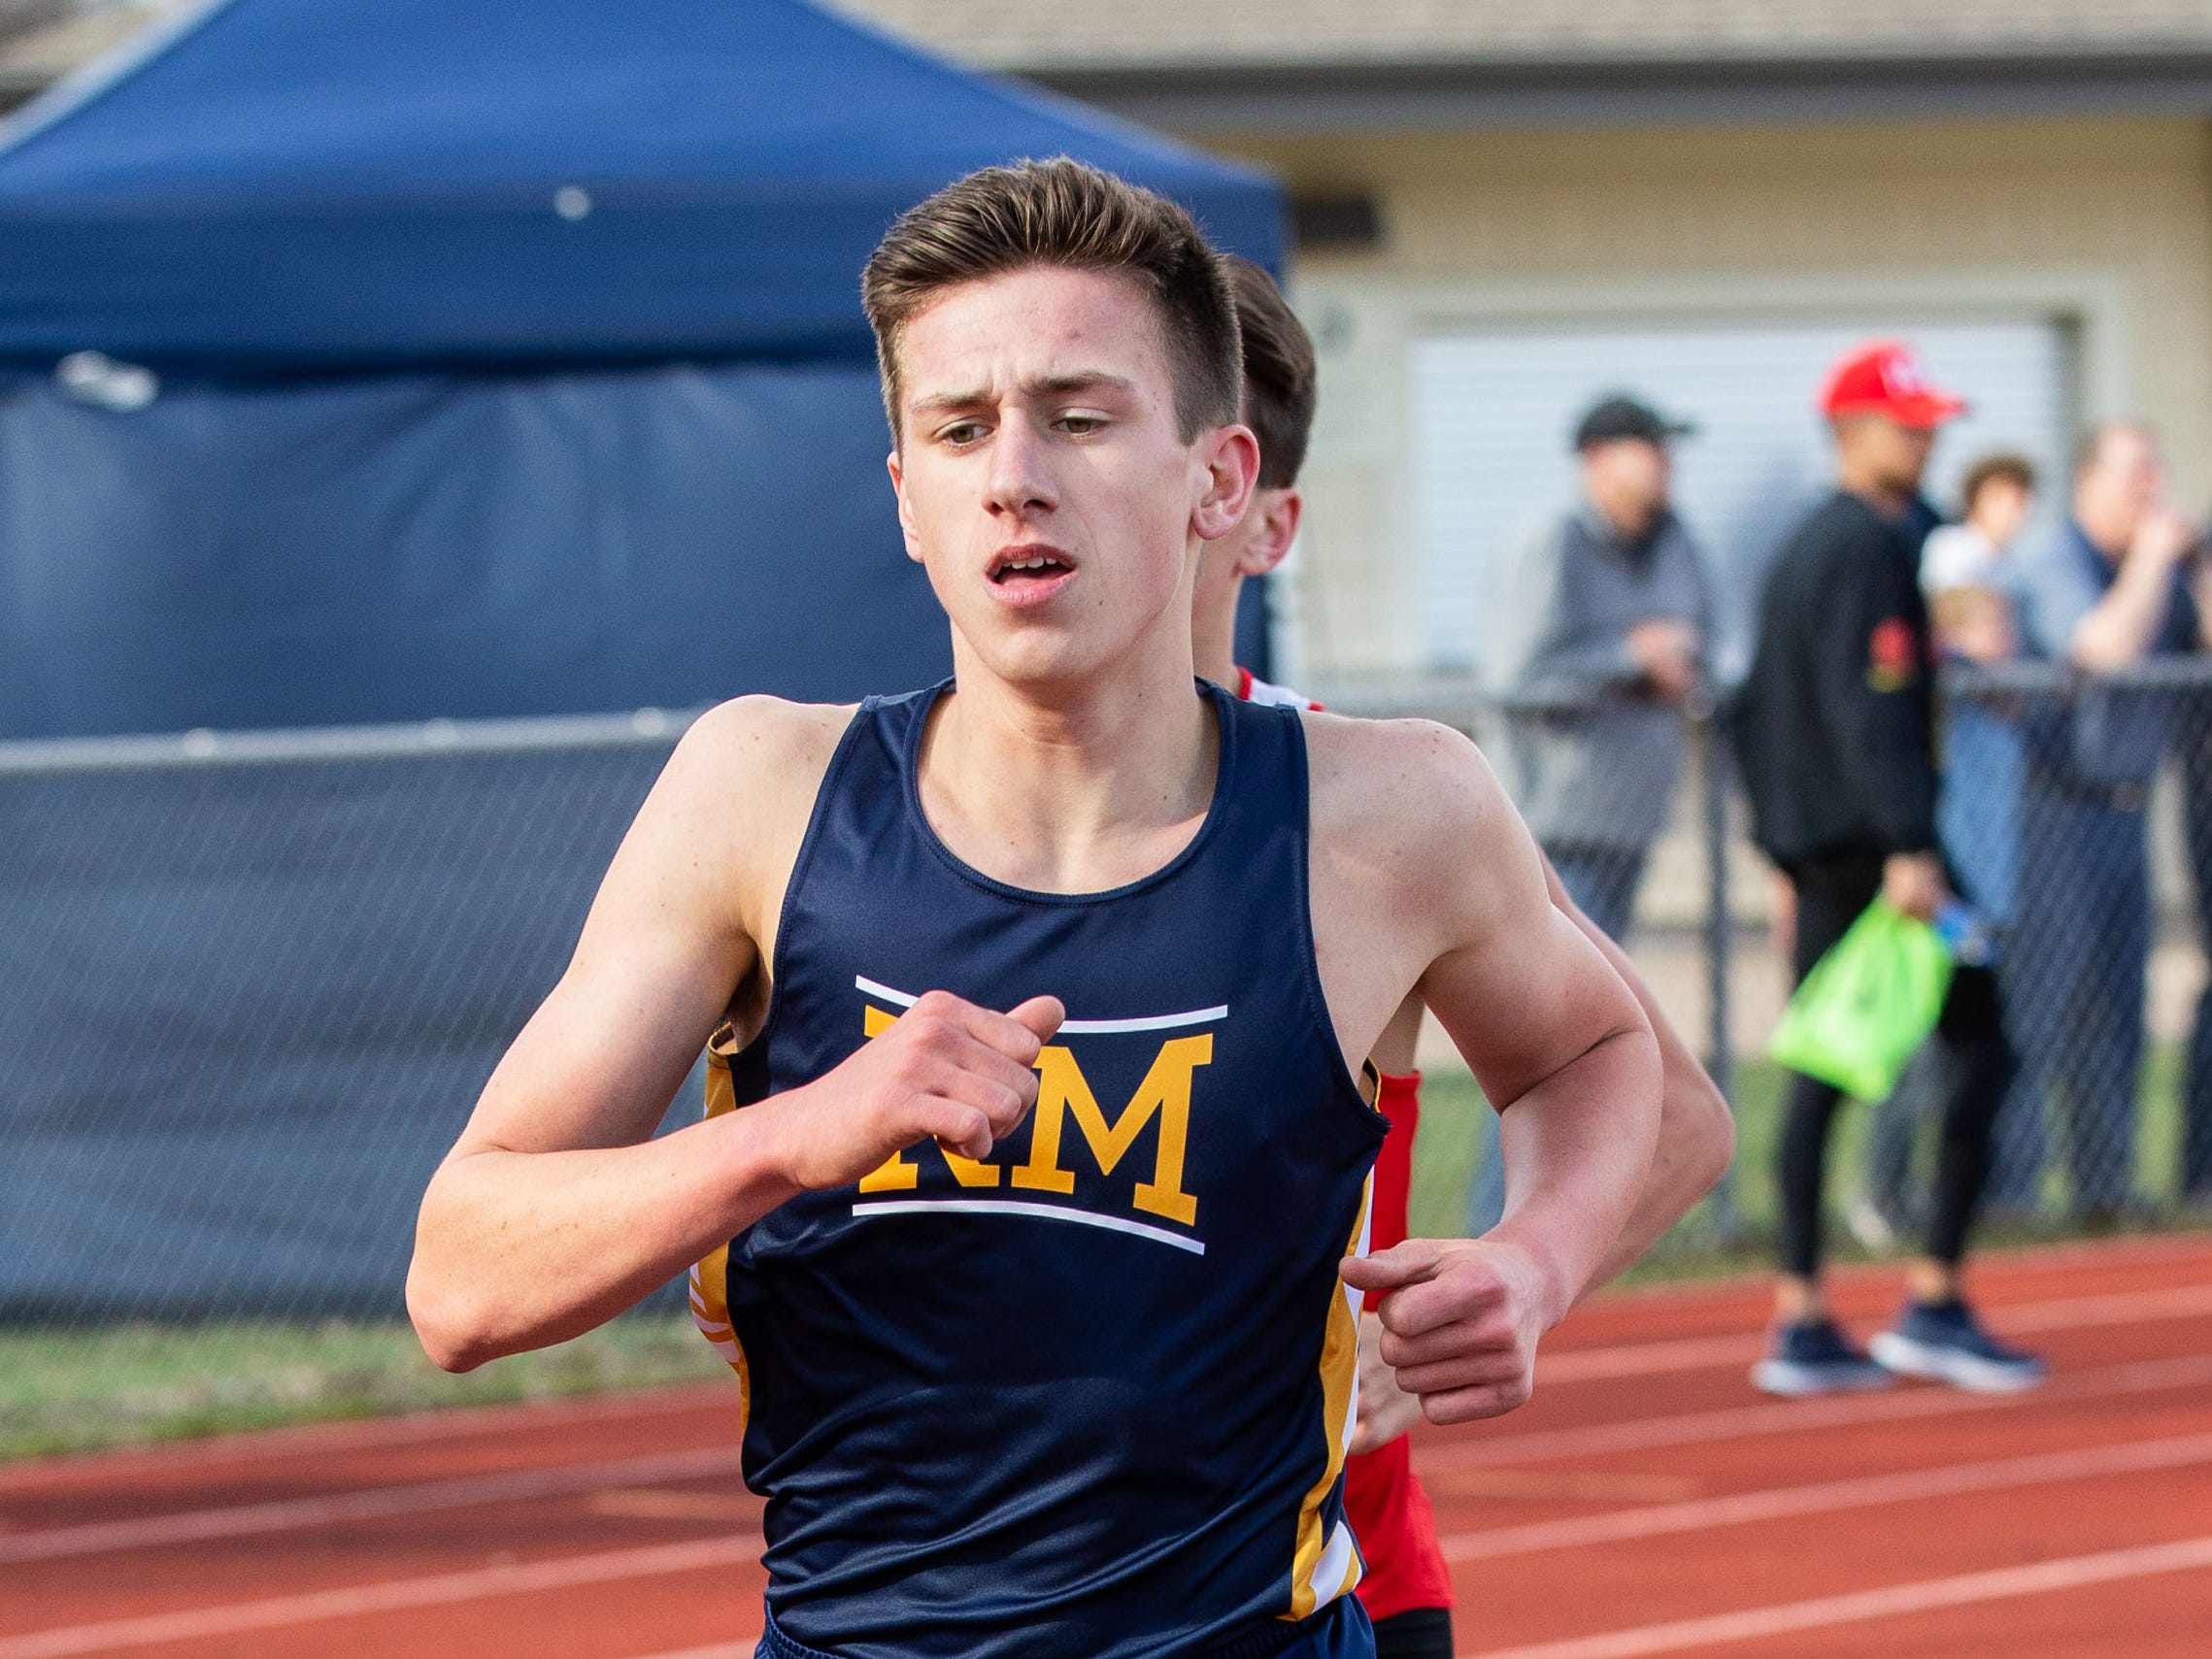 Kettle Moraine's Logan Elkin competes in the 1600 meter run during the Mike Gain 50th Annual Spartan Invitational at Brookfield East on Tuesday, April 9, 2019.